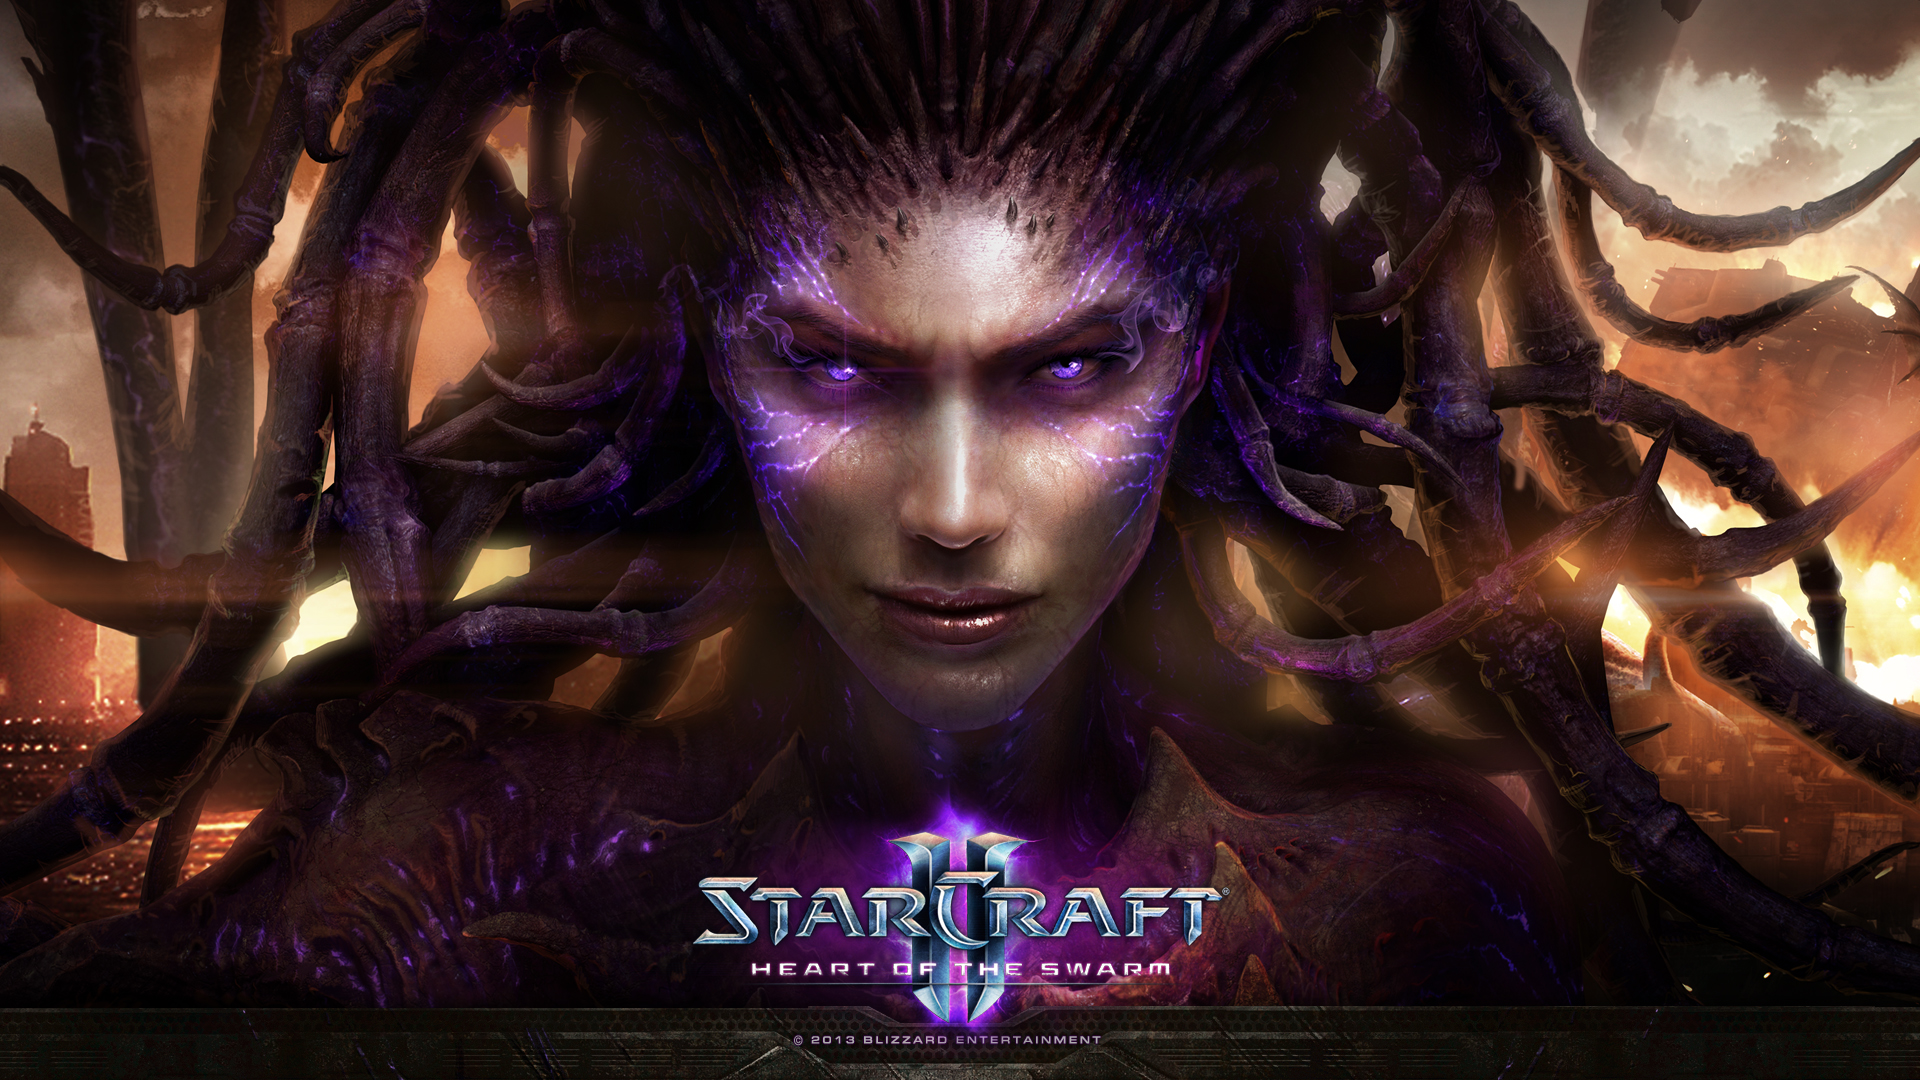 Starcraft 2 Wallpapers